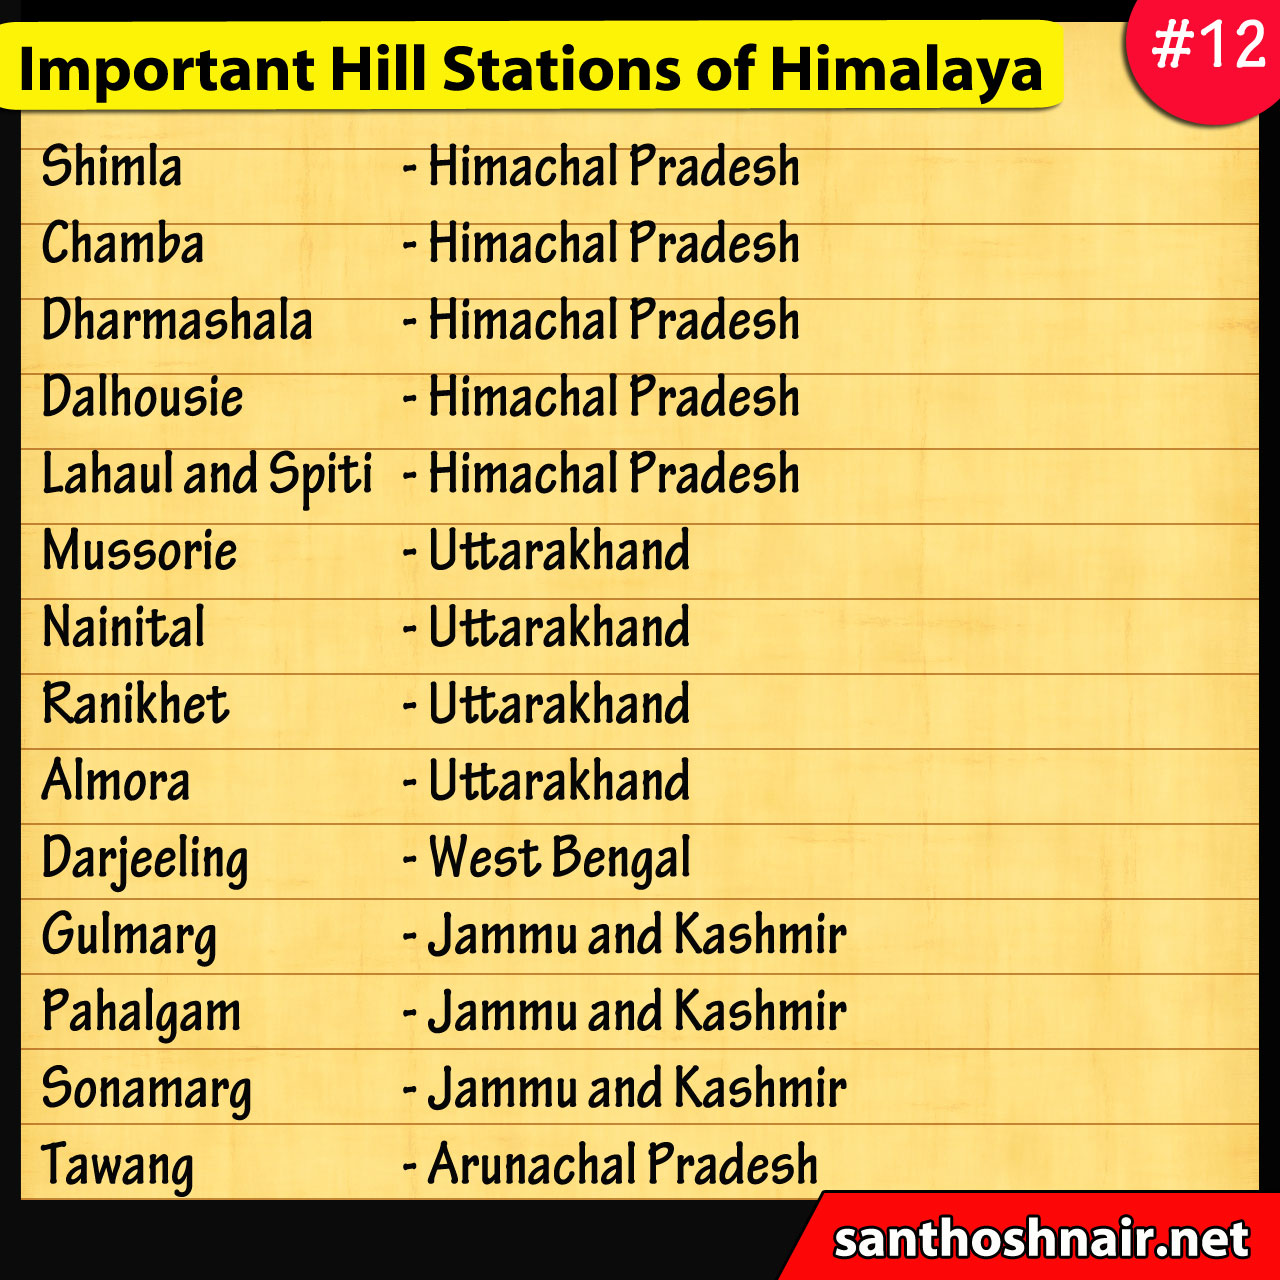 #12 - Important Hill Stations of Himalaya